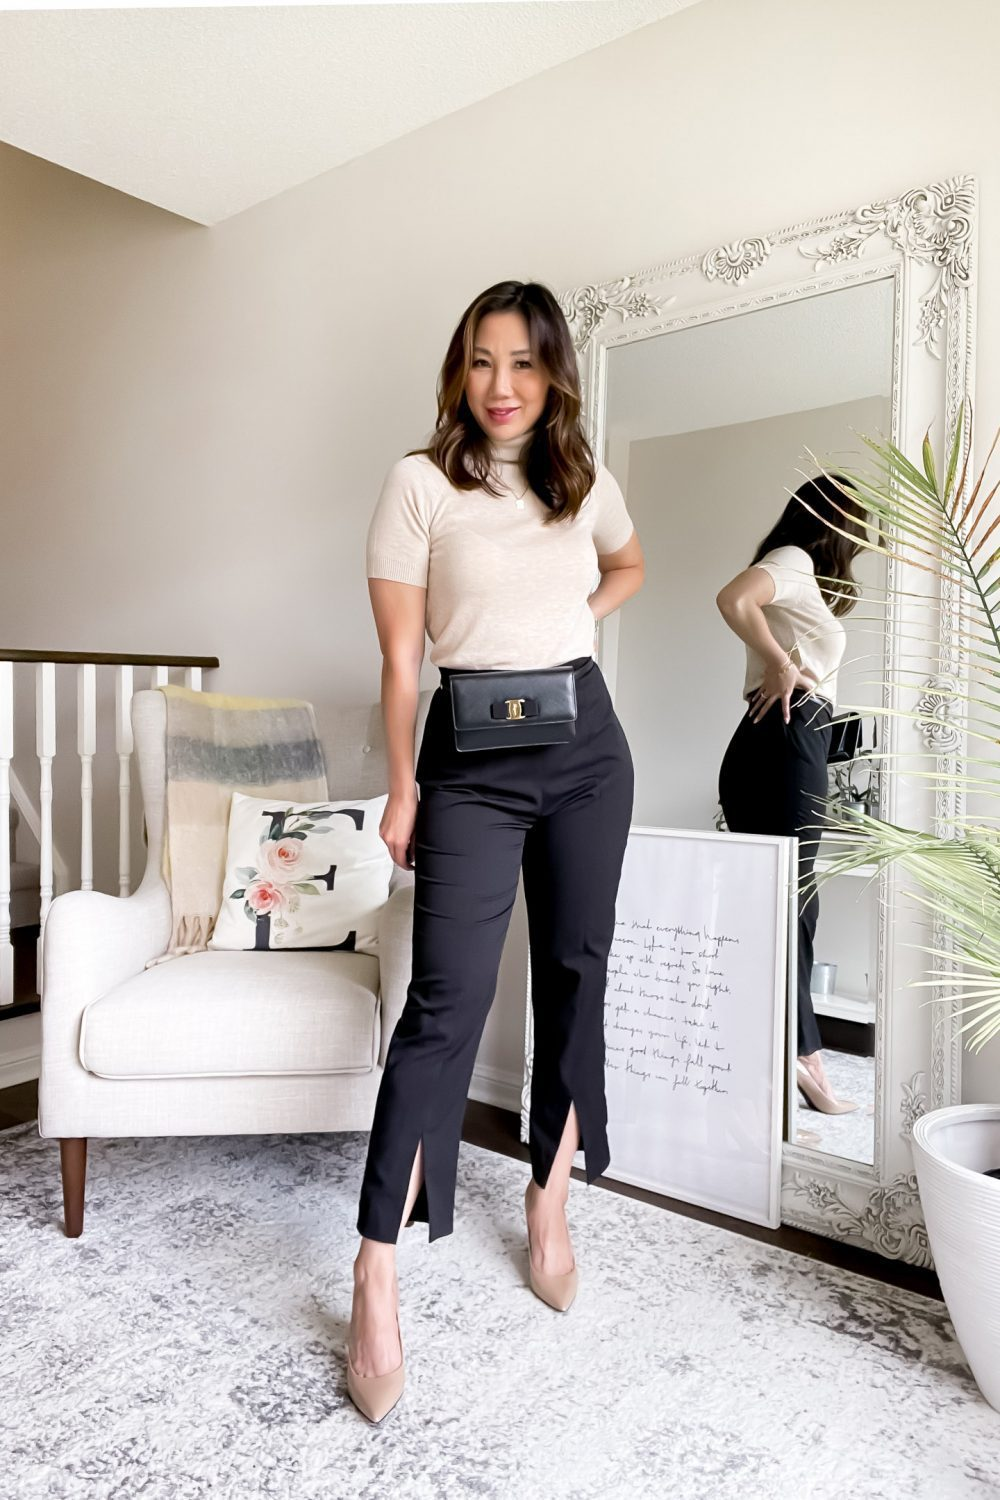 Chic office outfit with knit sweater and black pants with waist bag.